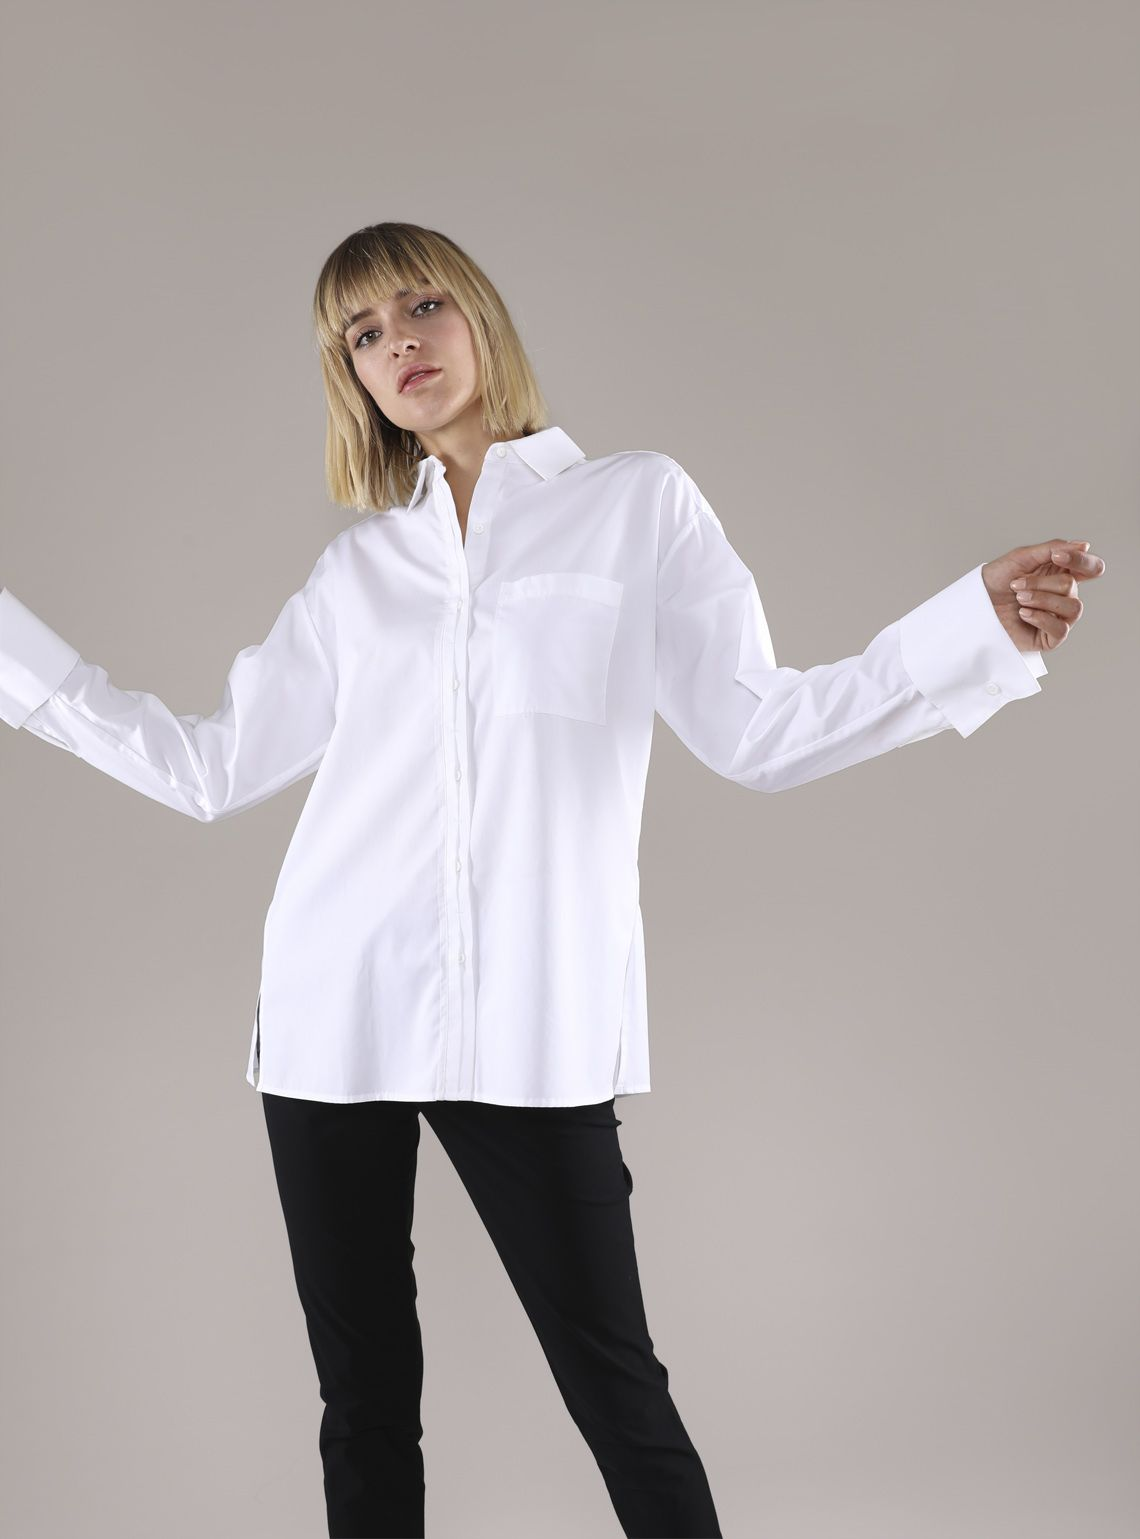 Make a Shirtdress From An Oversized Shirt